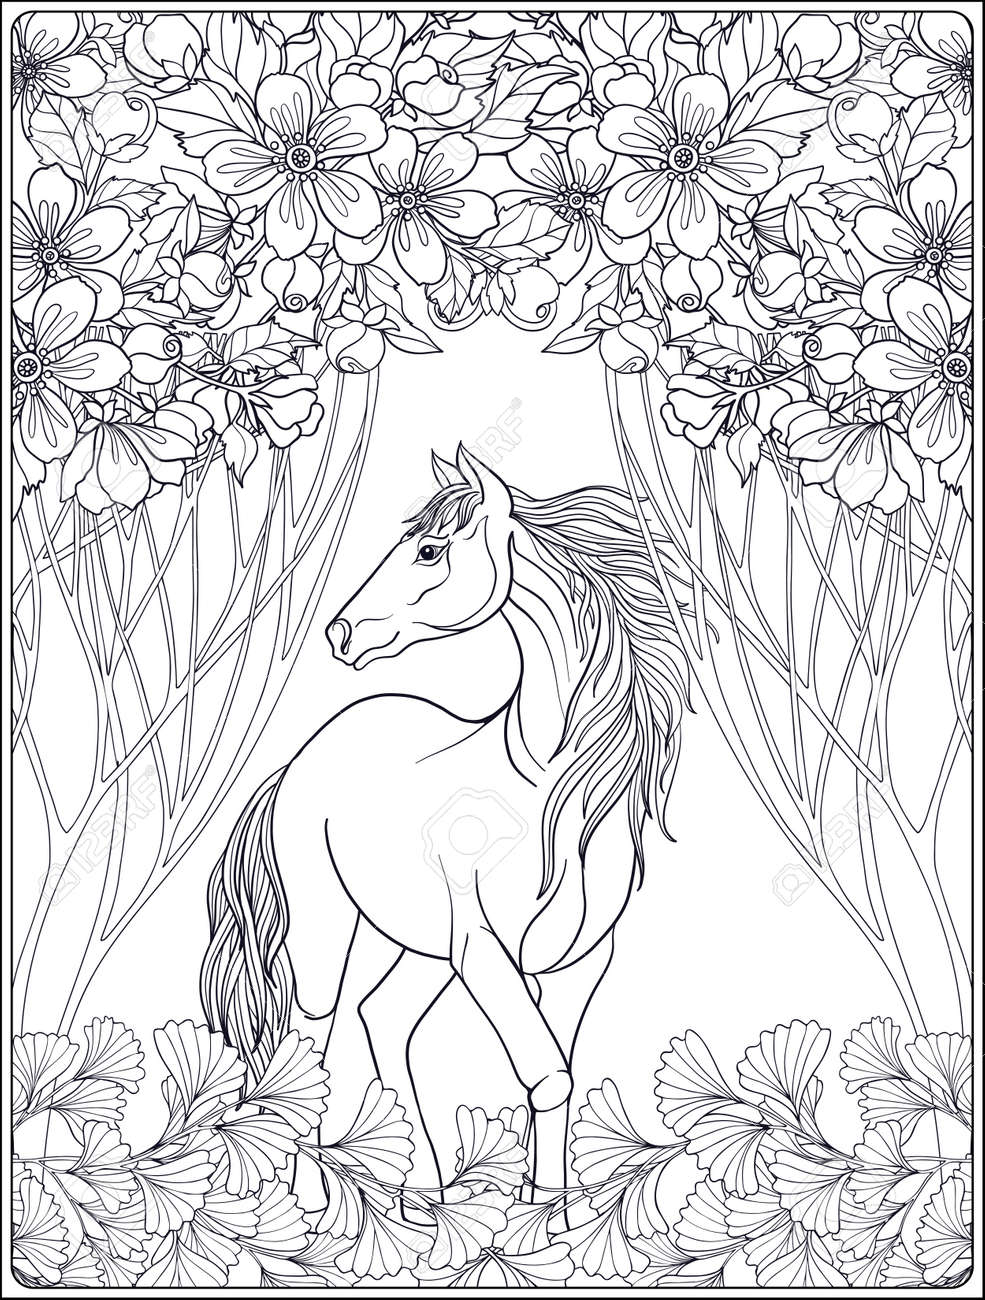 Horse In Garden Vector Illustration Coloring Book For Adult And Older Children Outline